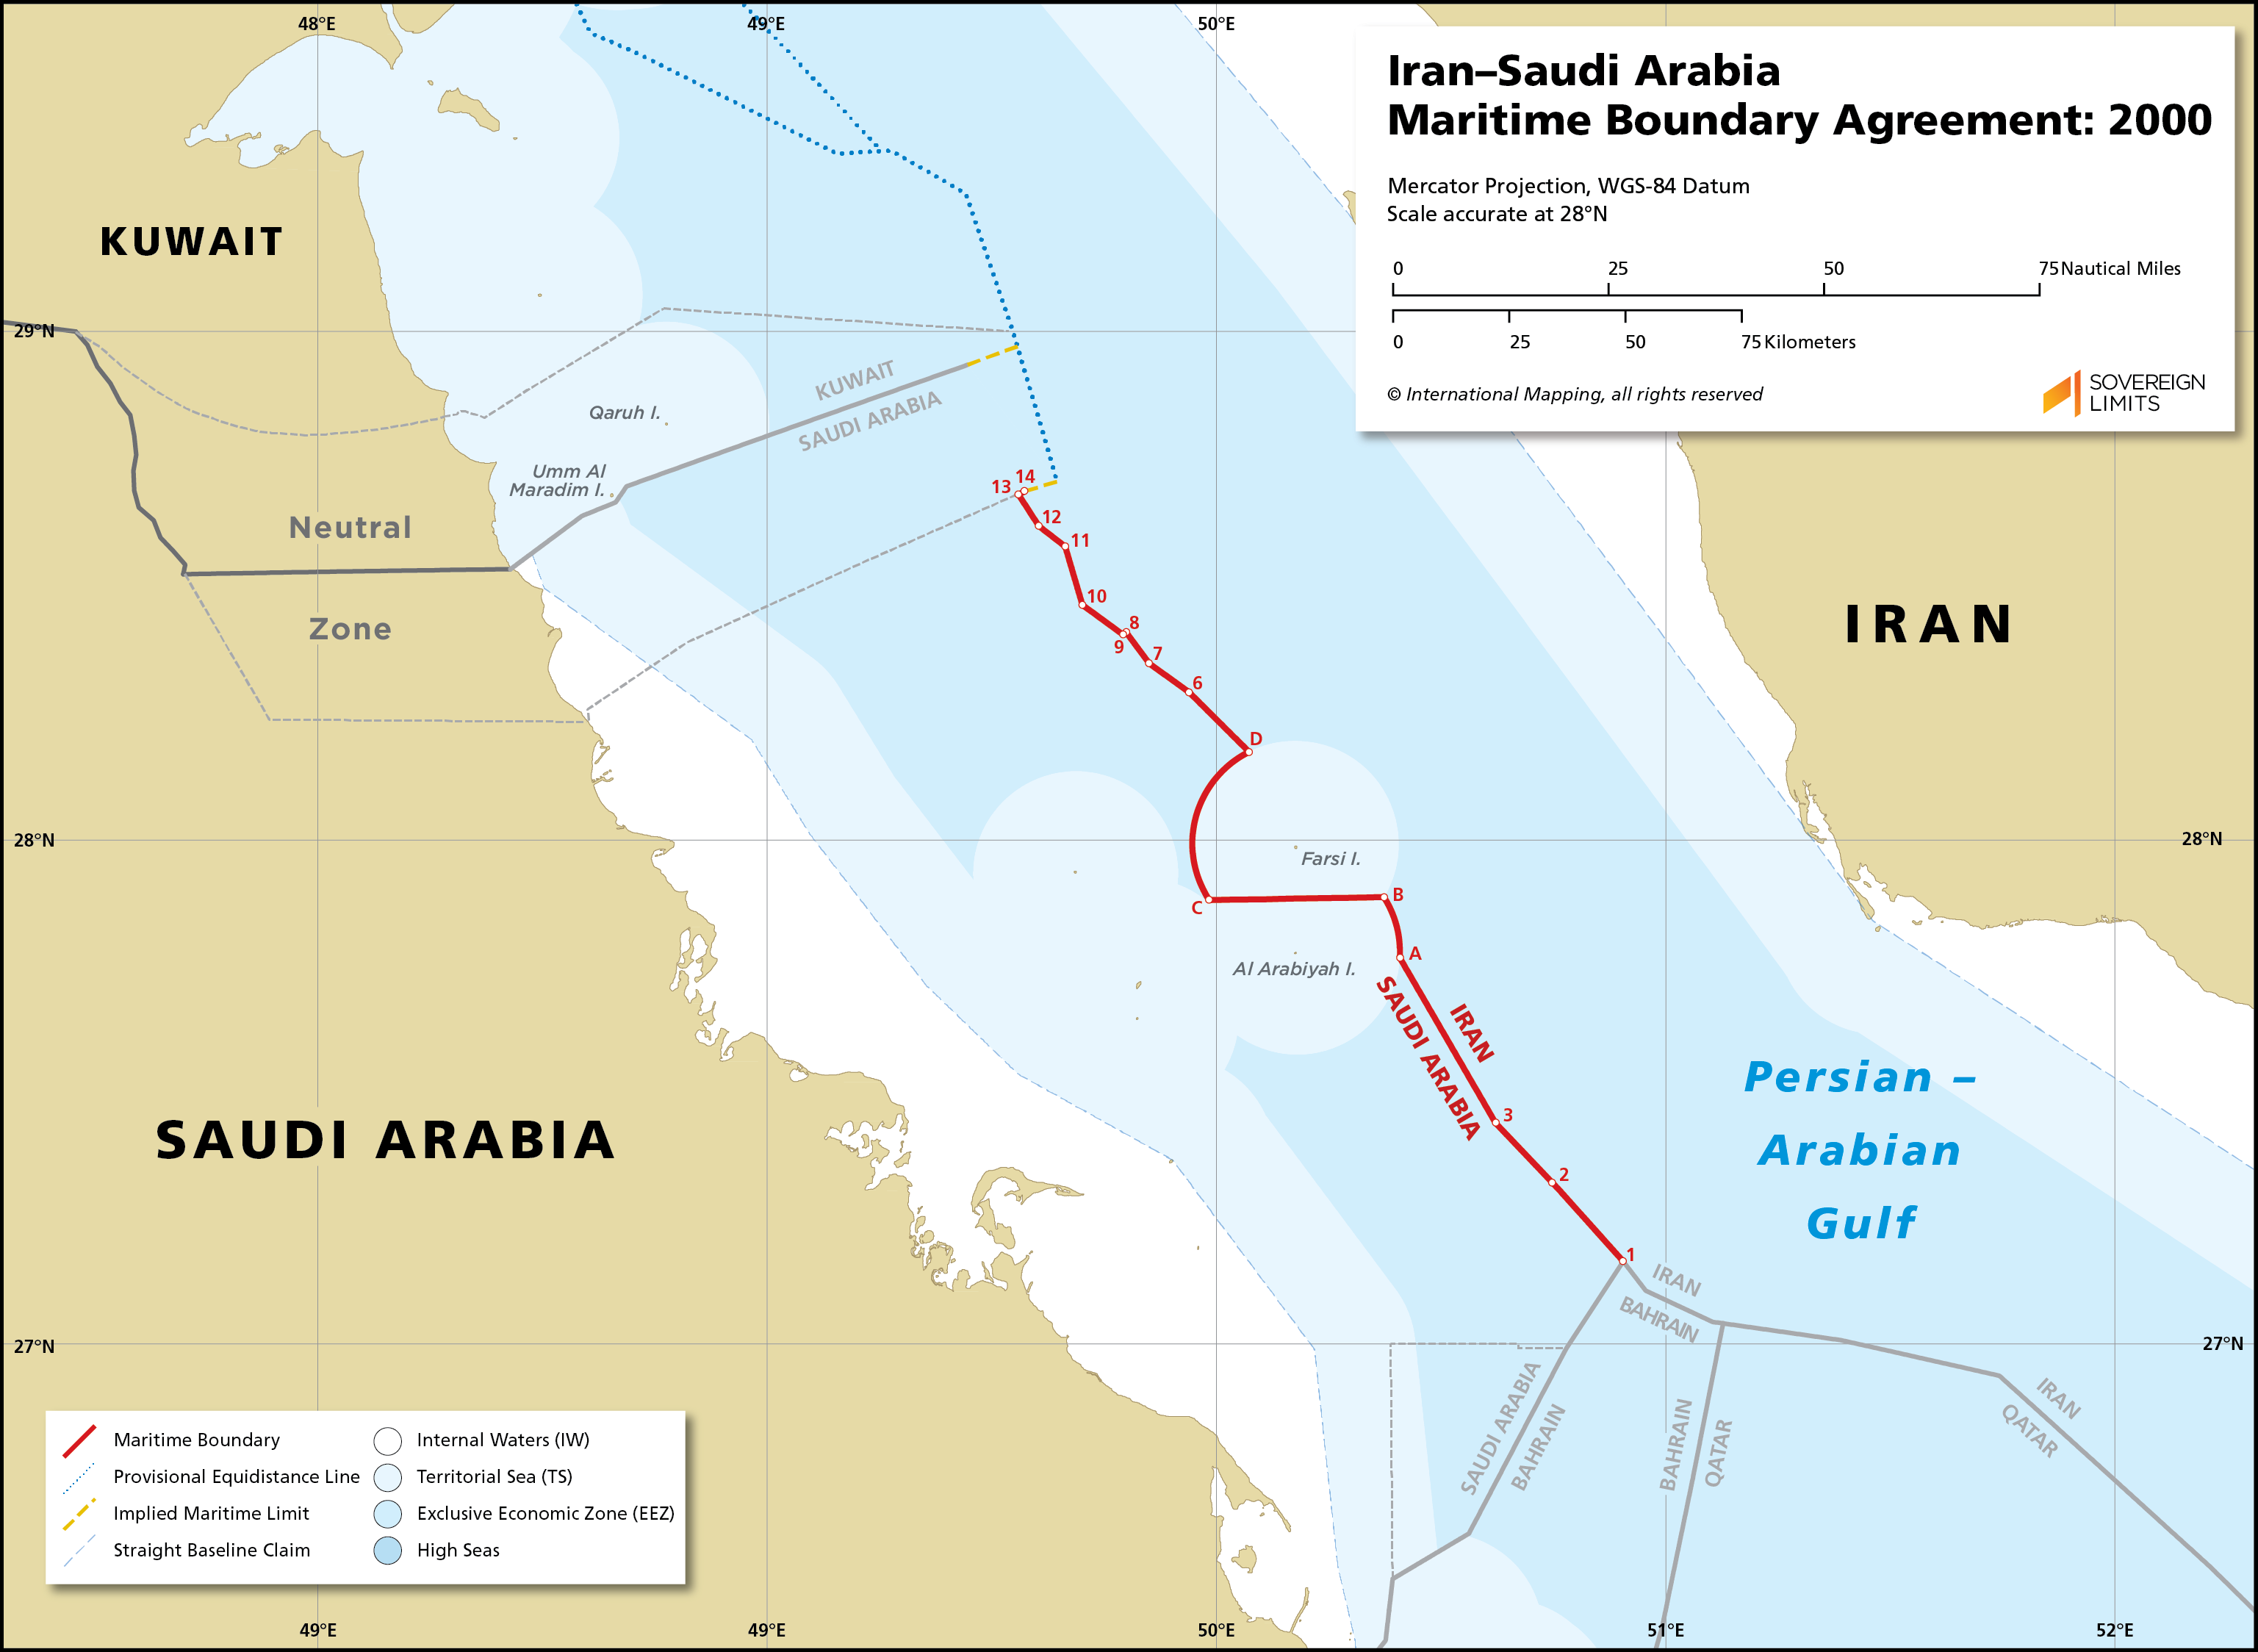 Map showing the maritime boundary between Iran and Saudi Arabia